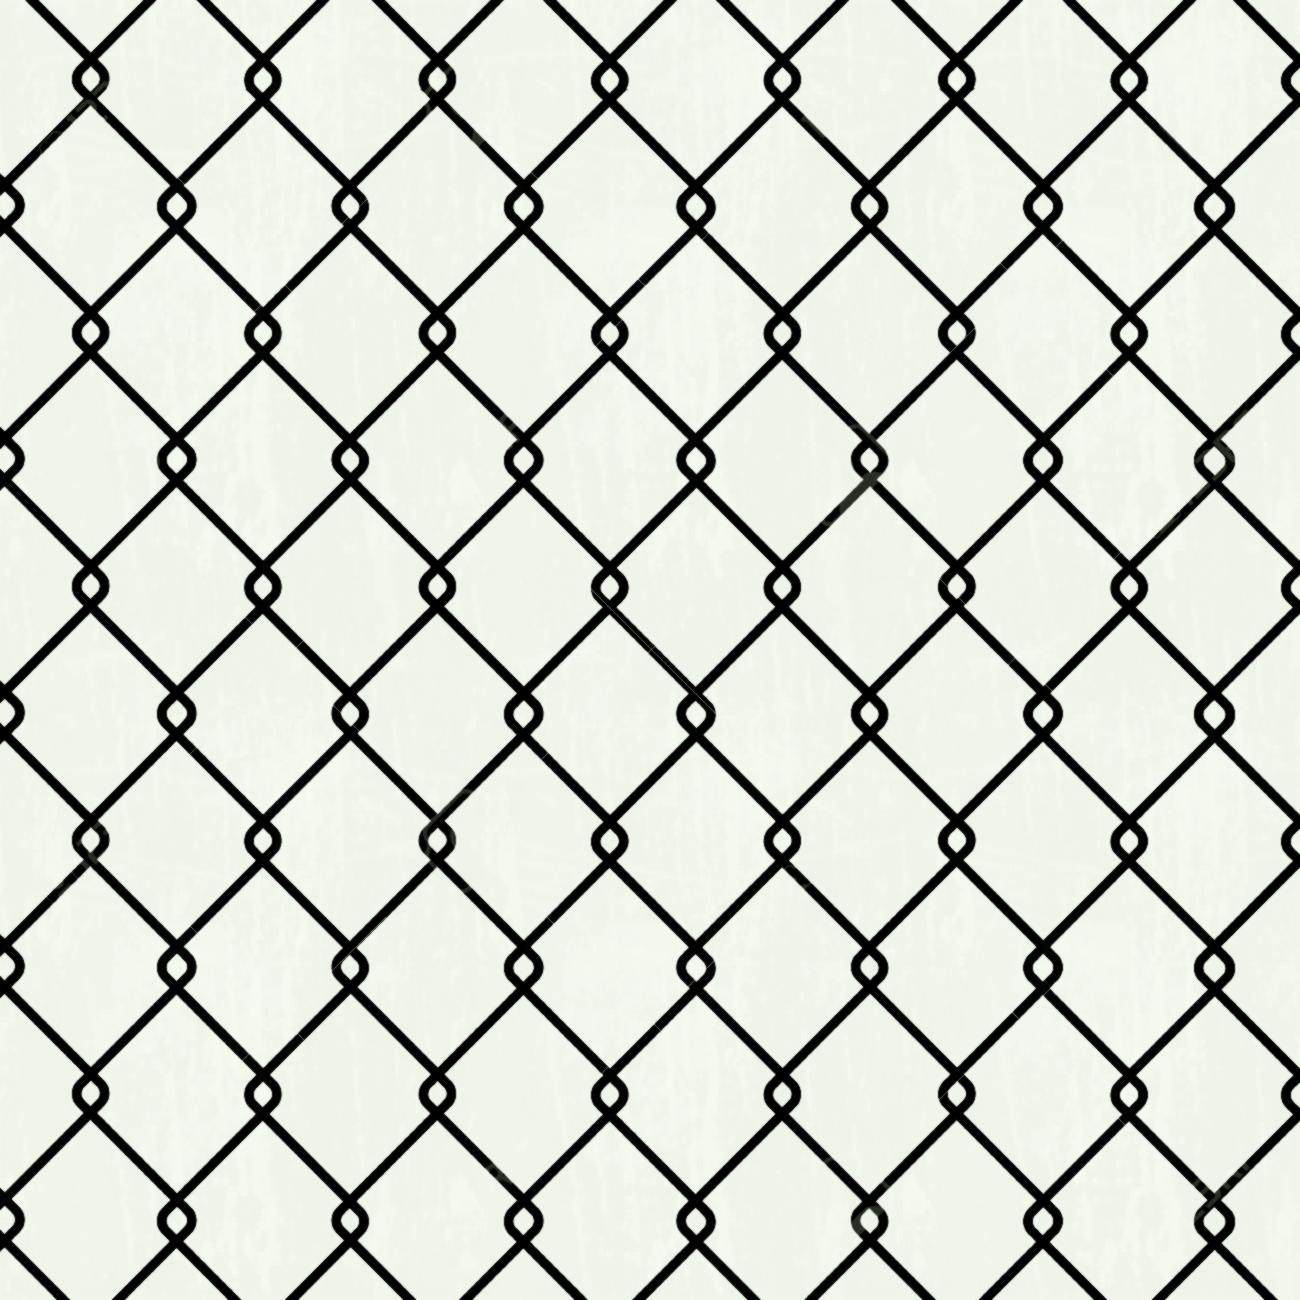 1300x1300 Seamless Chain Link Fence Background Royalty Free Stock Vector Art